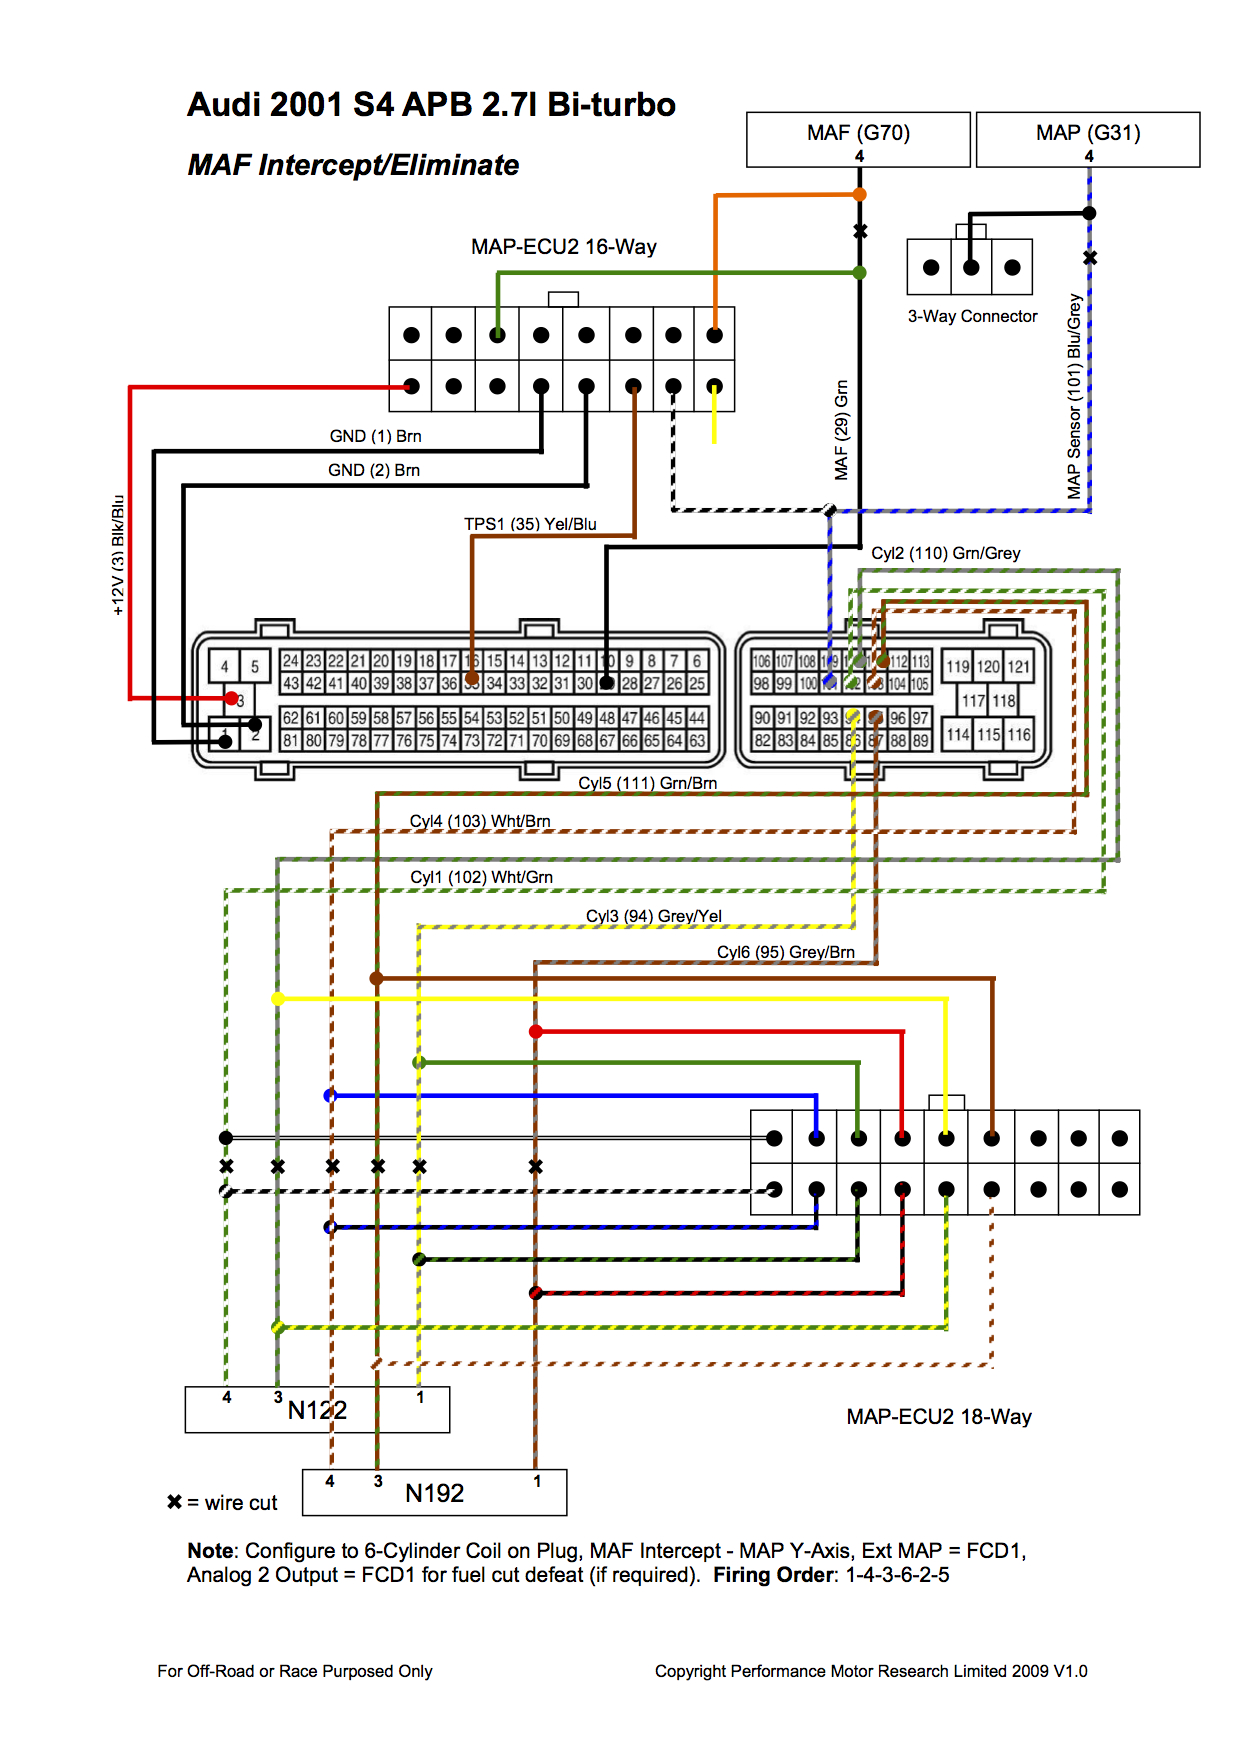 Audi S4 20011 300zx wiring diagram 300zx engine wiring diagram \u2022 wiring diagrams 2014 nissan sentra radio wiring diagram at gsmportal.co